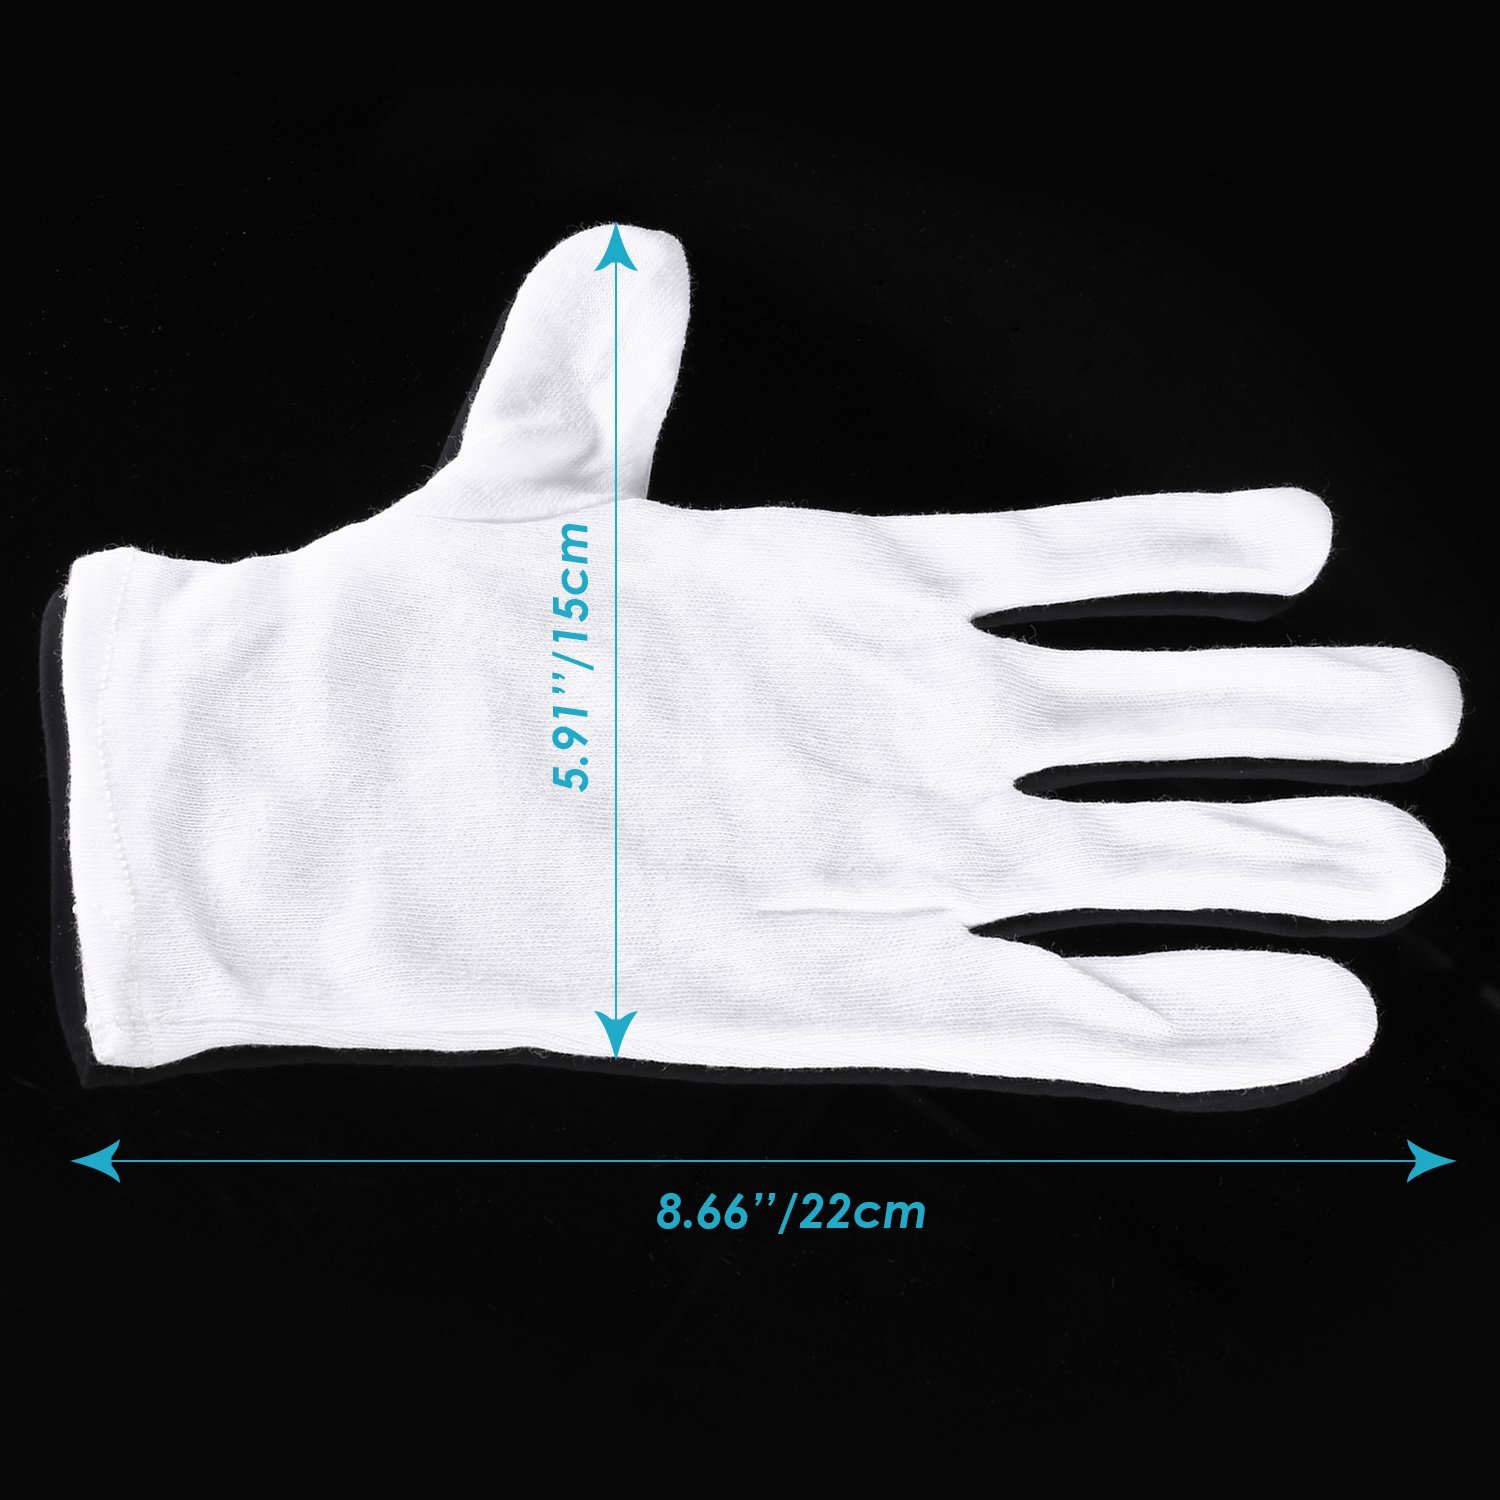 Neewer 24 Pairs (48 Gloves) 100% Cotton Lisle White Inspection Work Gloves for Coin, Jewelry, Silver, or Photo Inspection by Neewer (Image #3)